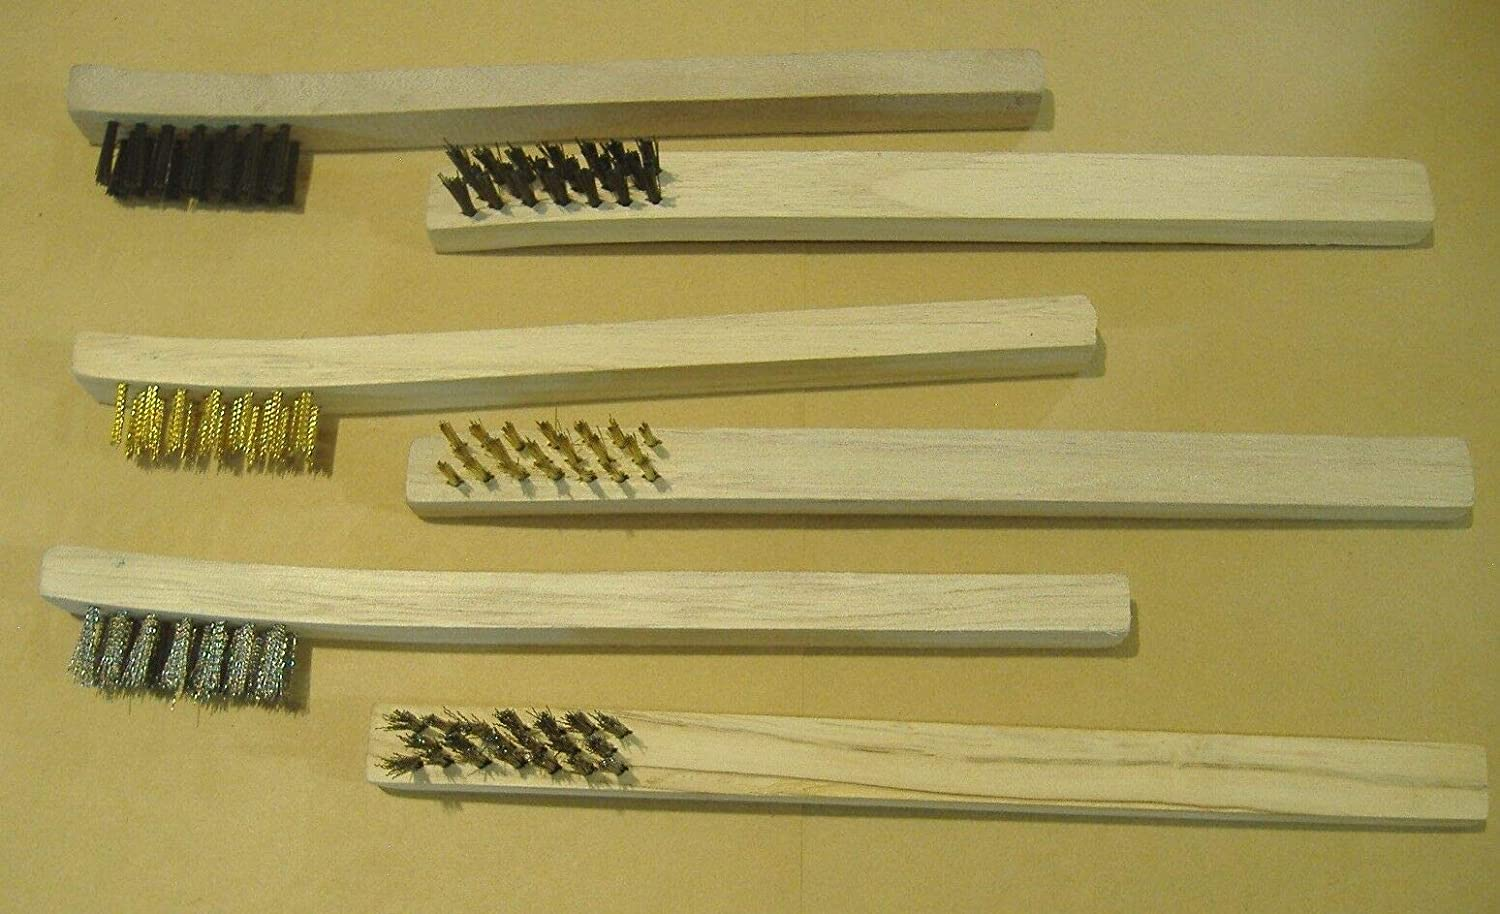 STAINLESS STEEL /& NYLON PARTS CLEANING WOOD LOT OF SIX DETAIL BRUSHES BRASS